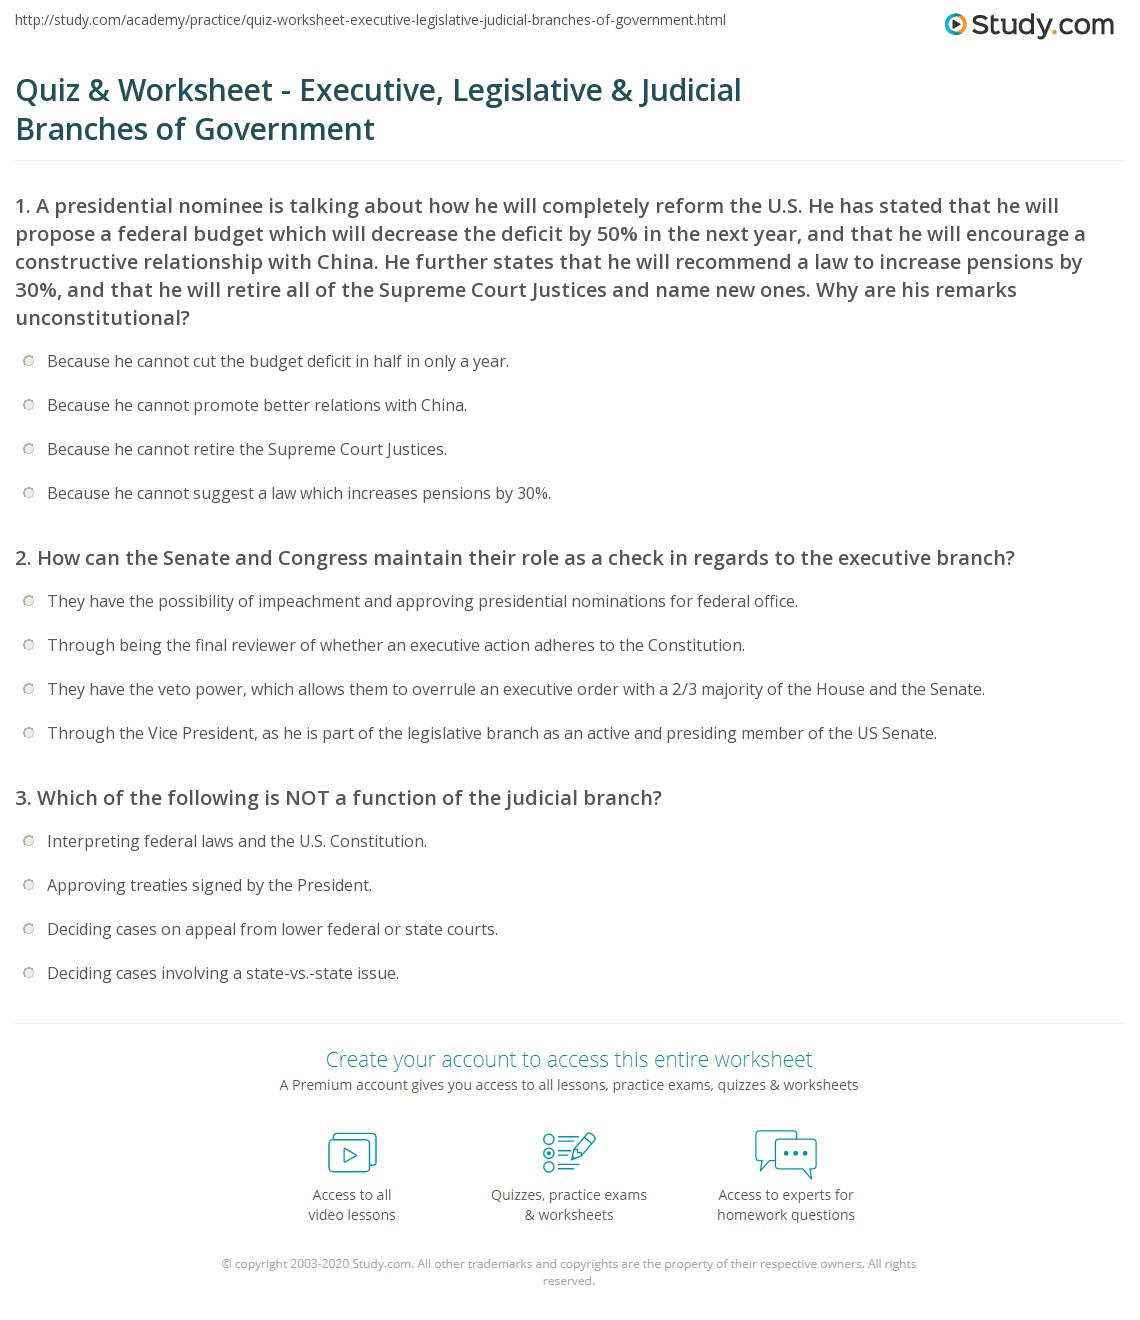 Quiz & Worksheet - Executive, Legislative & Judicial Branches of ...